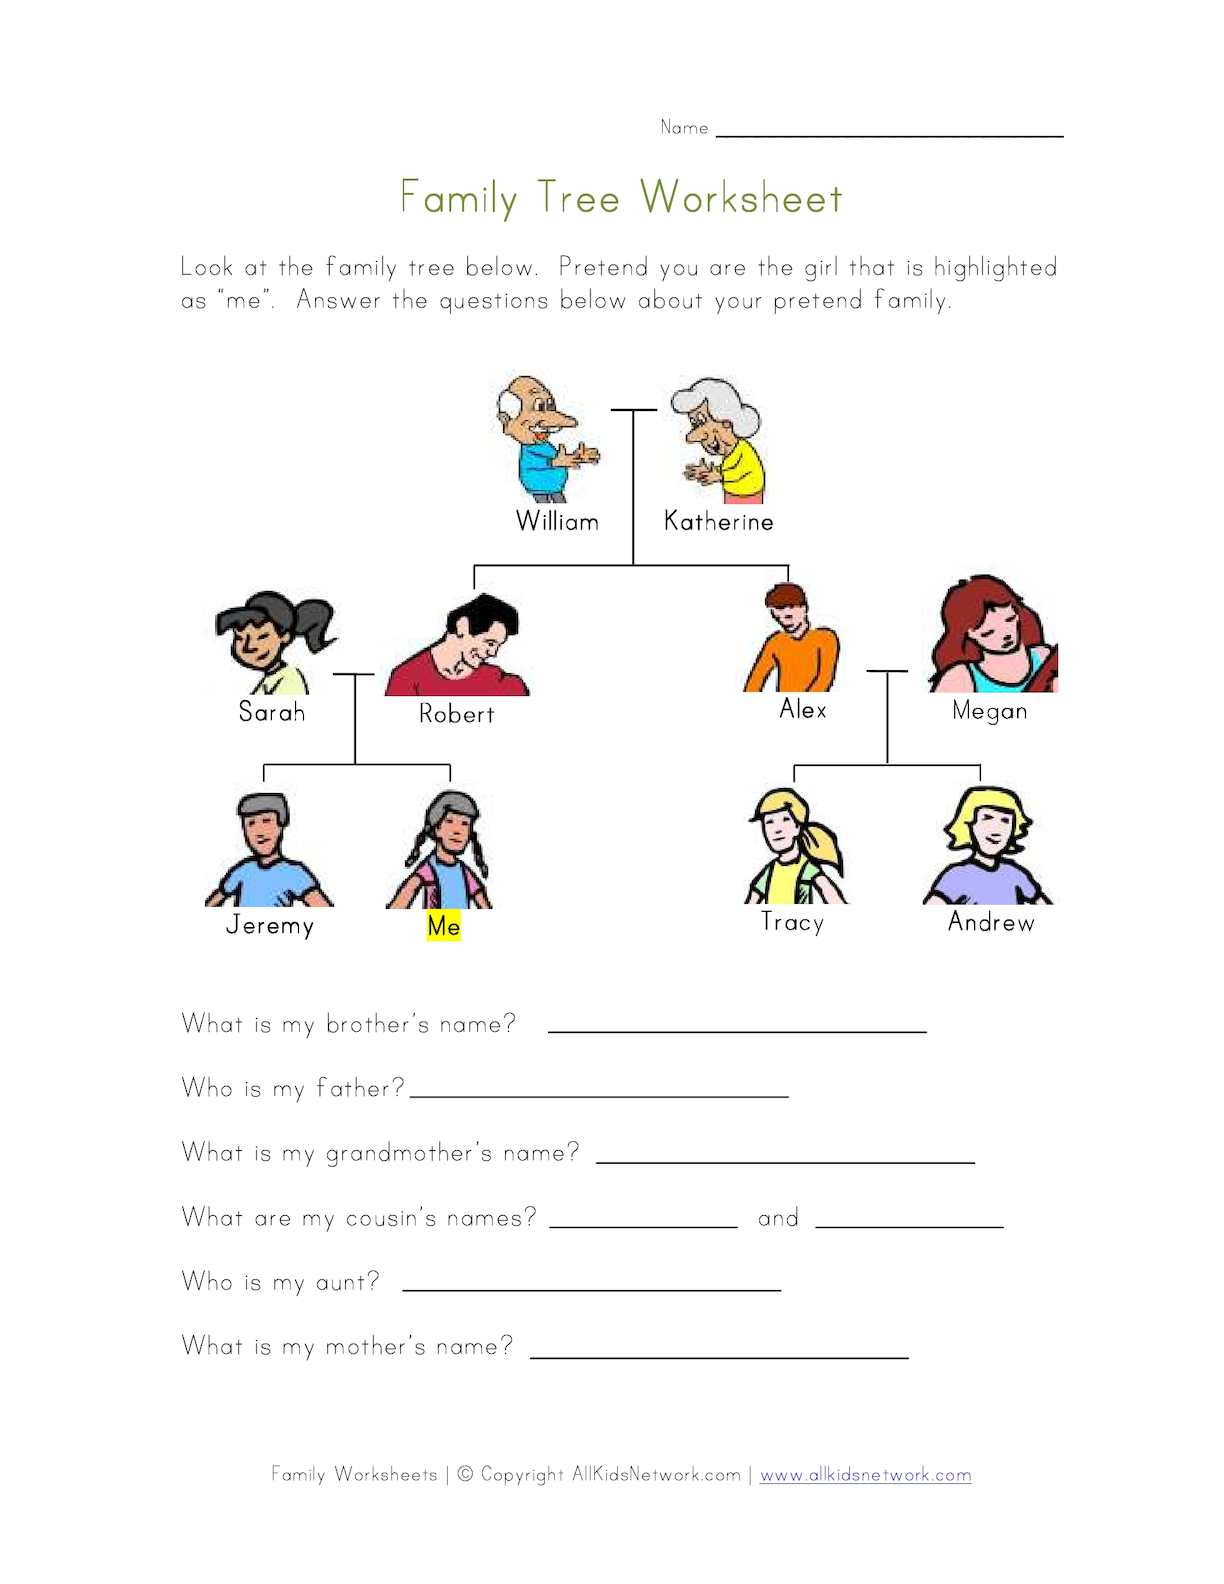 Calaméo - Family Tree Worksheet